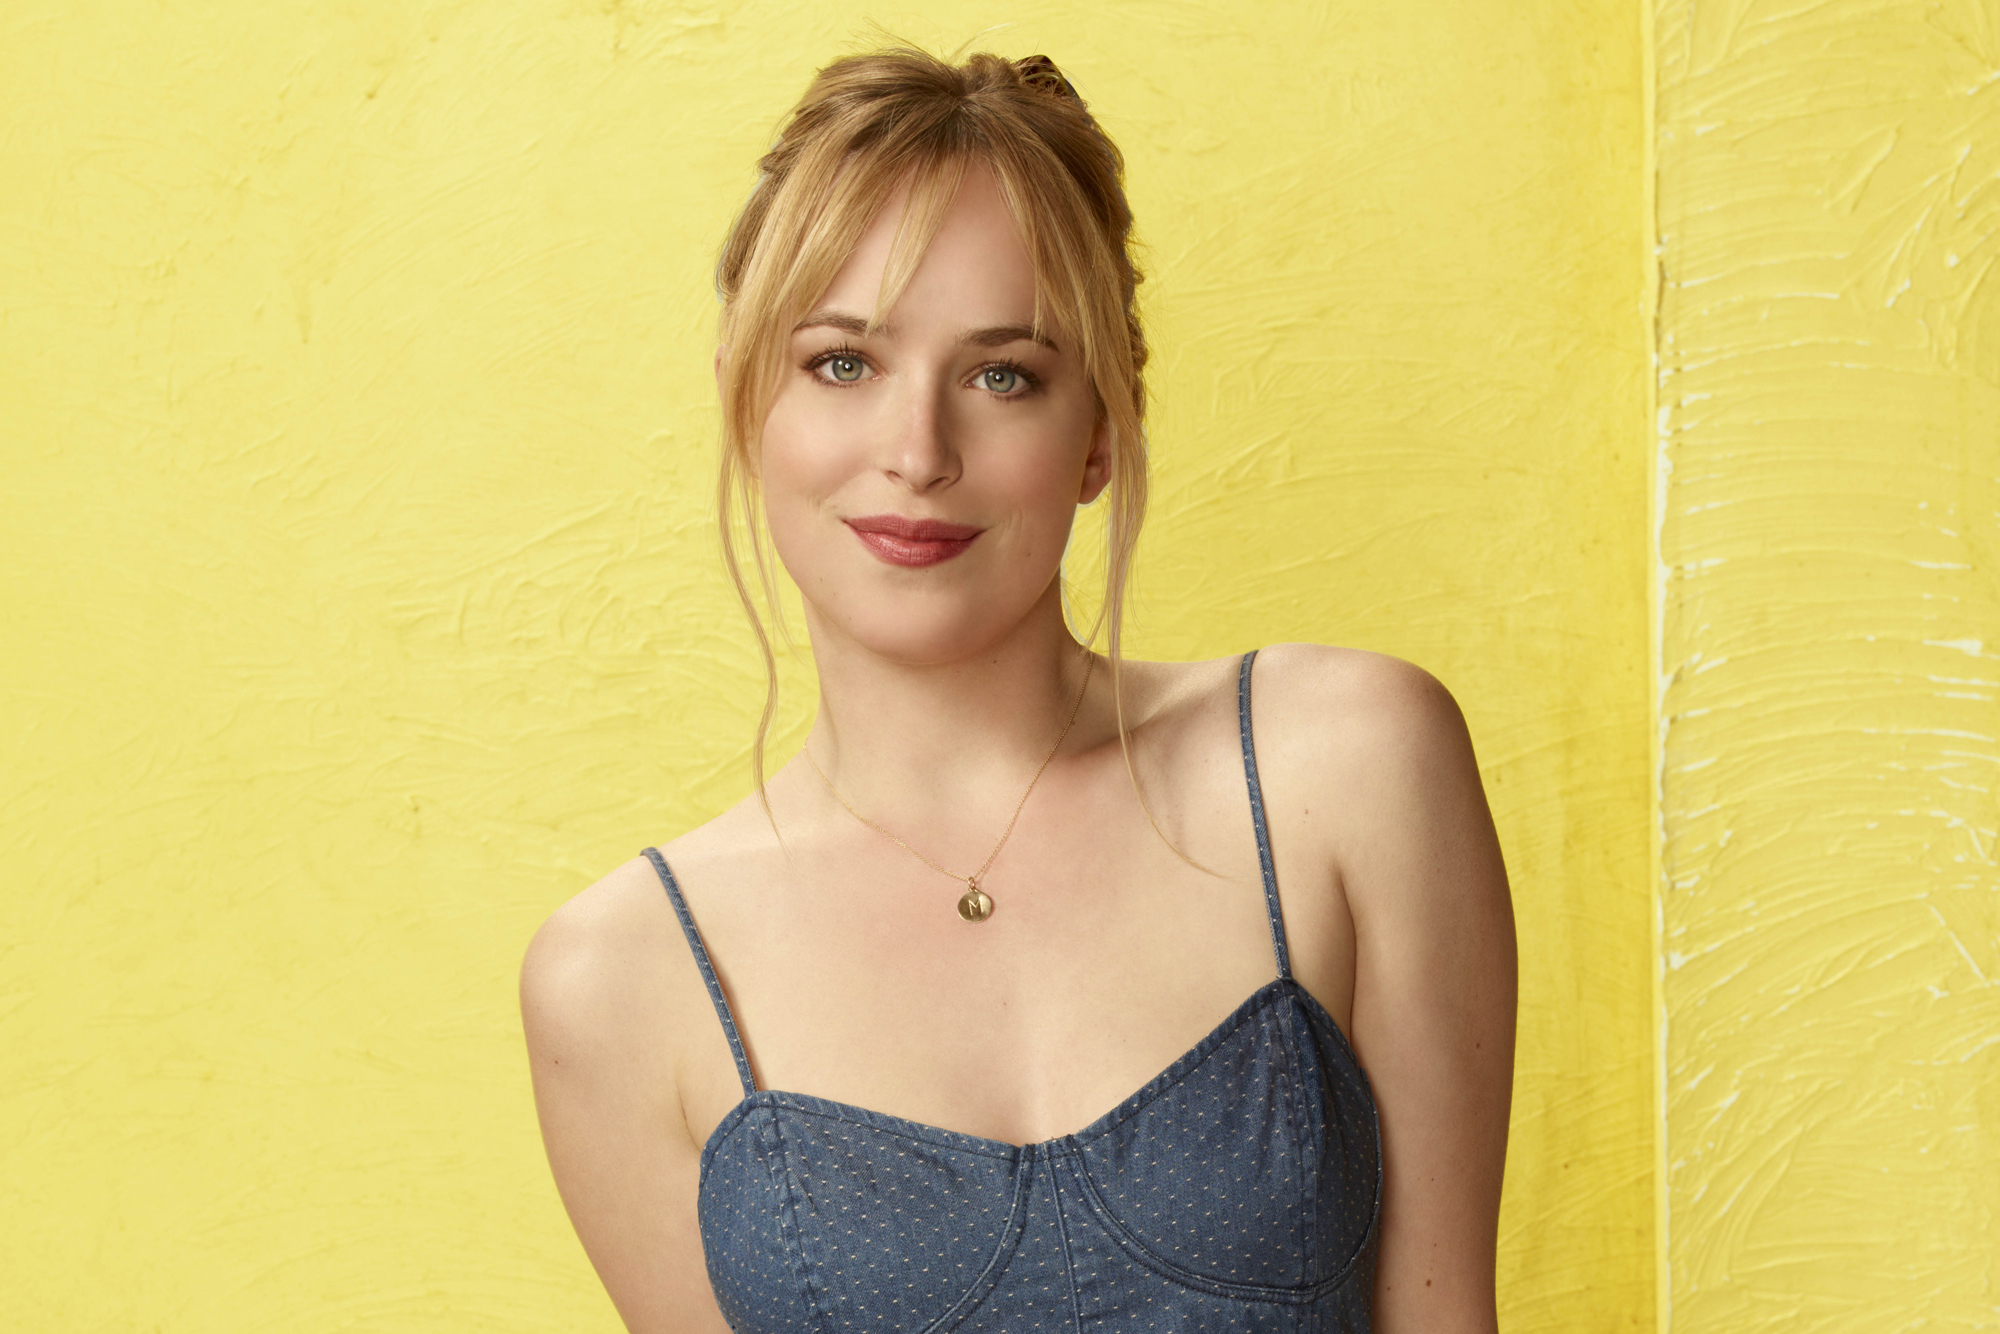 dakota johnson wallpapers images photos pictures backgrounds